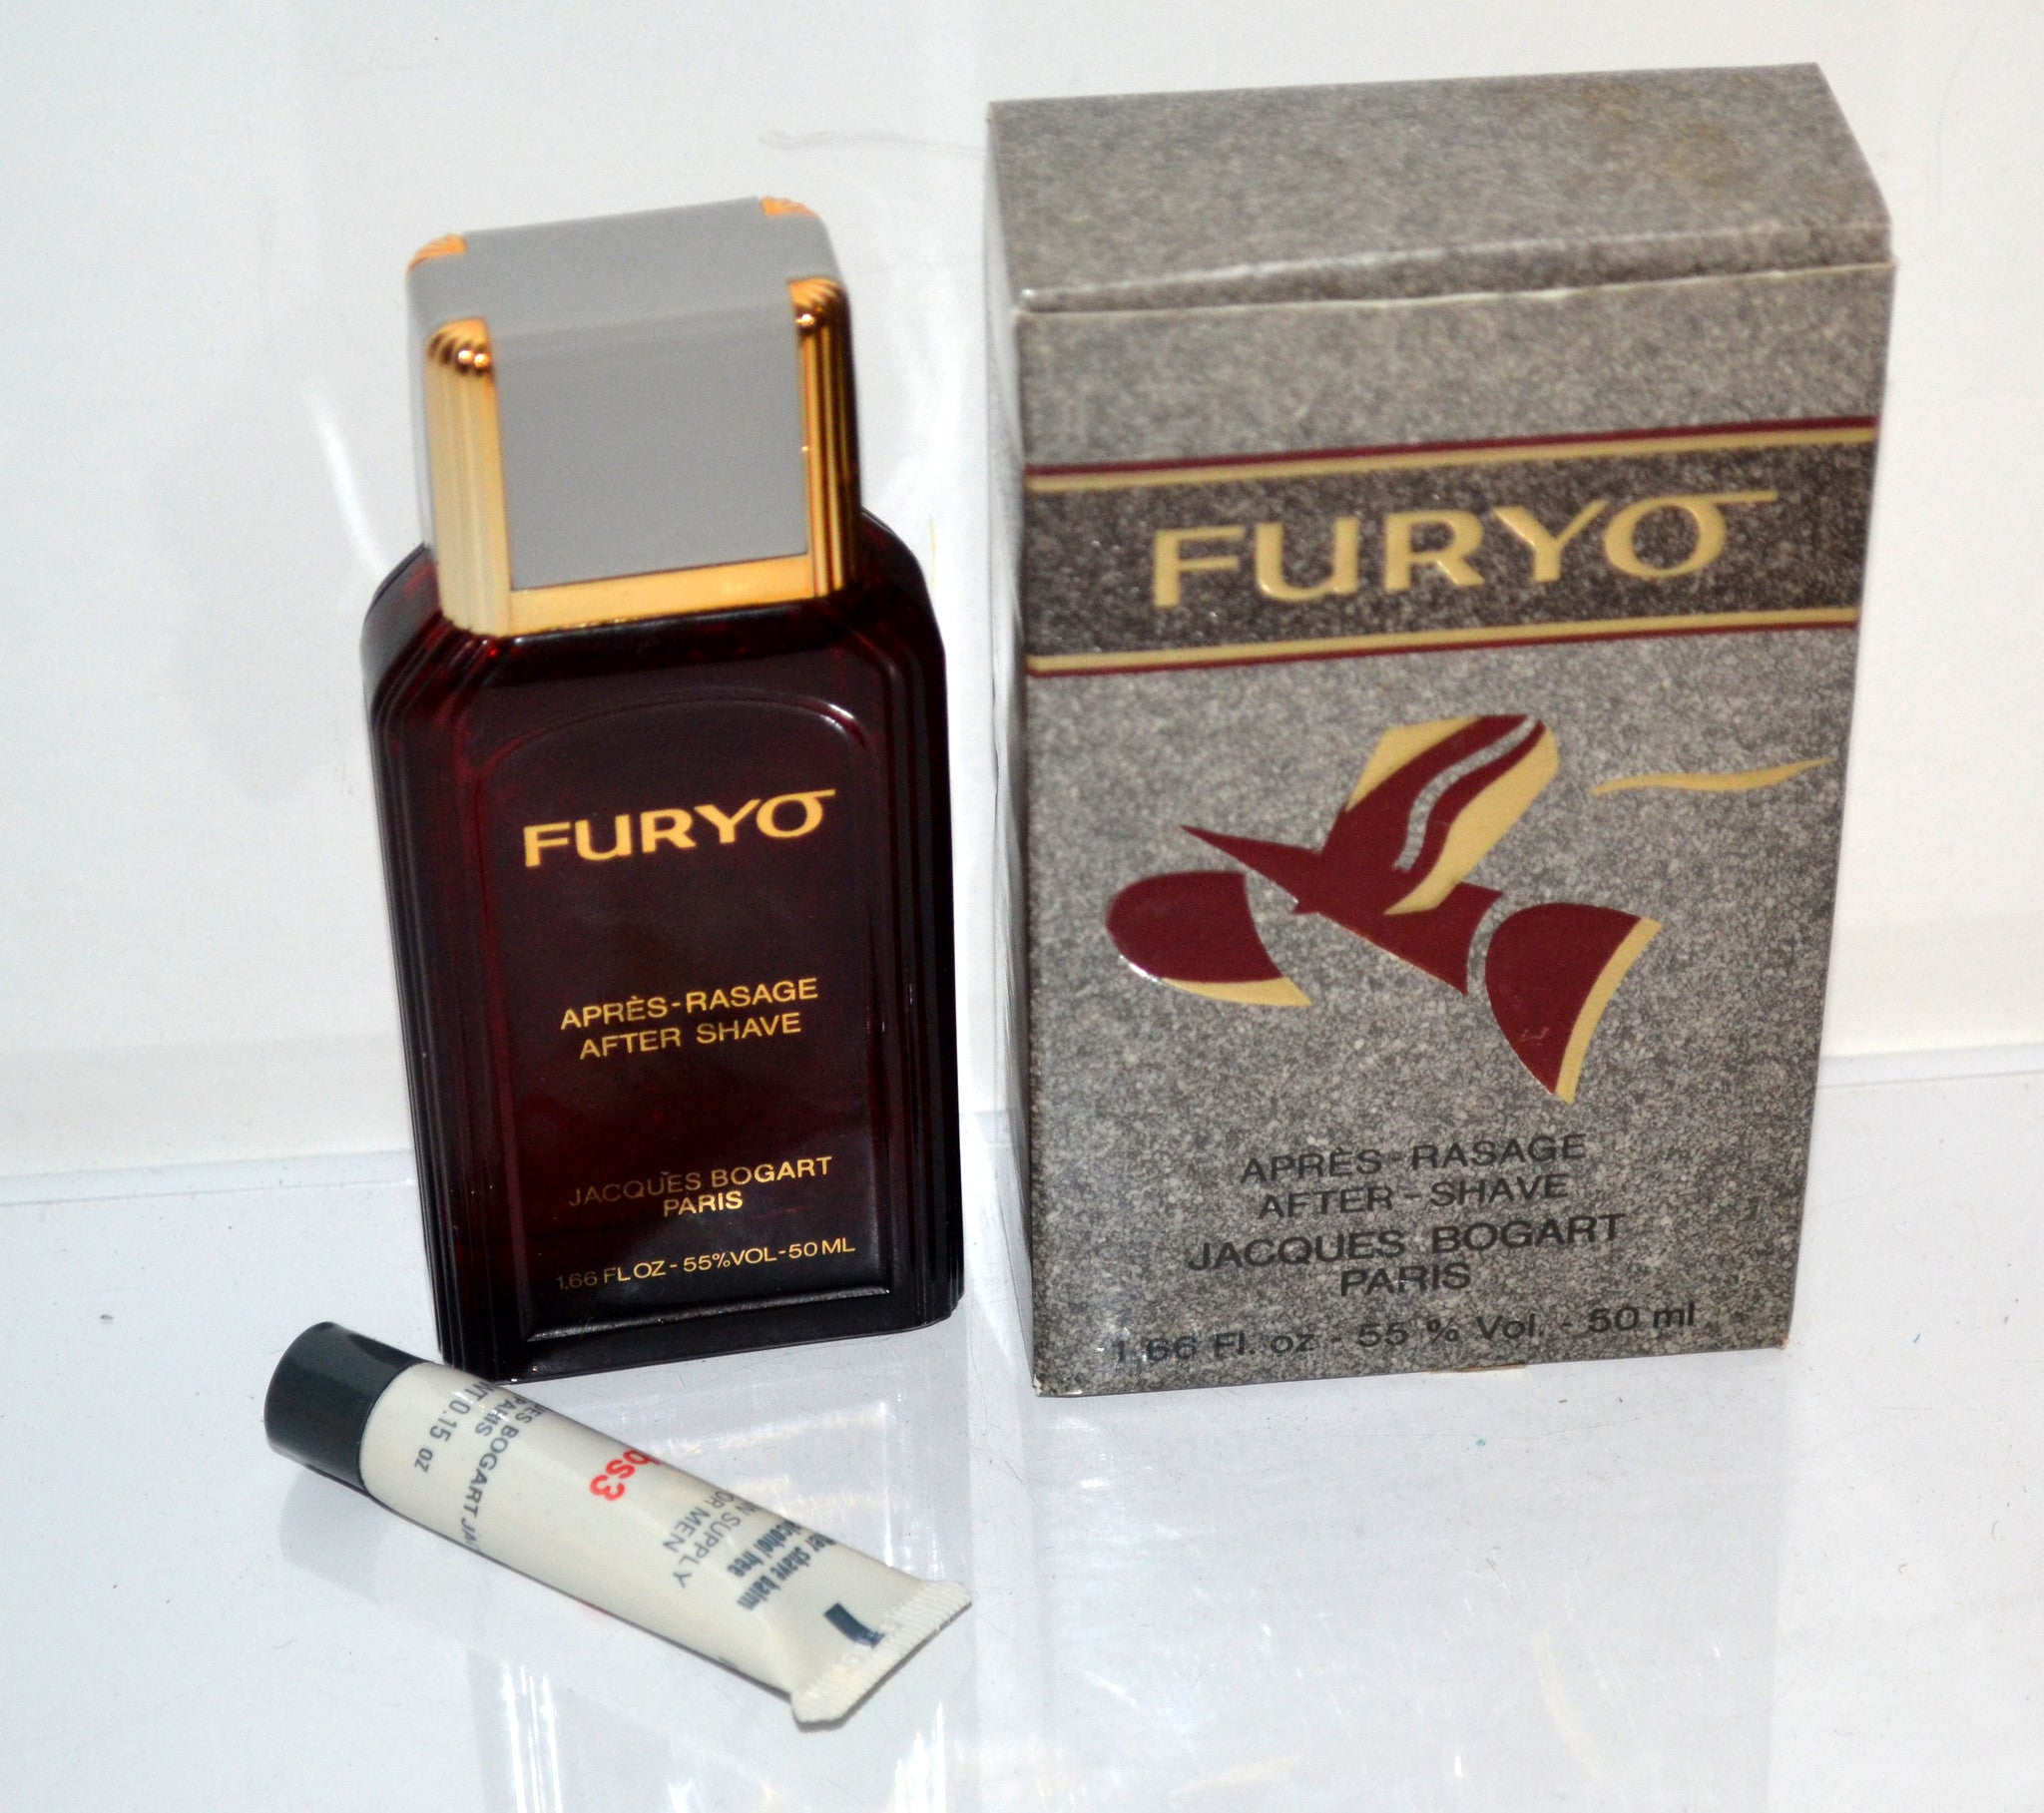 Jacques Bogart Furyo After Shave